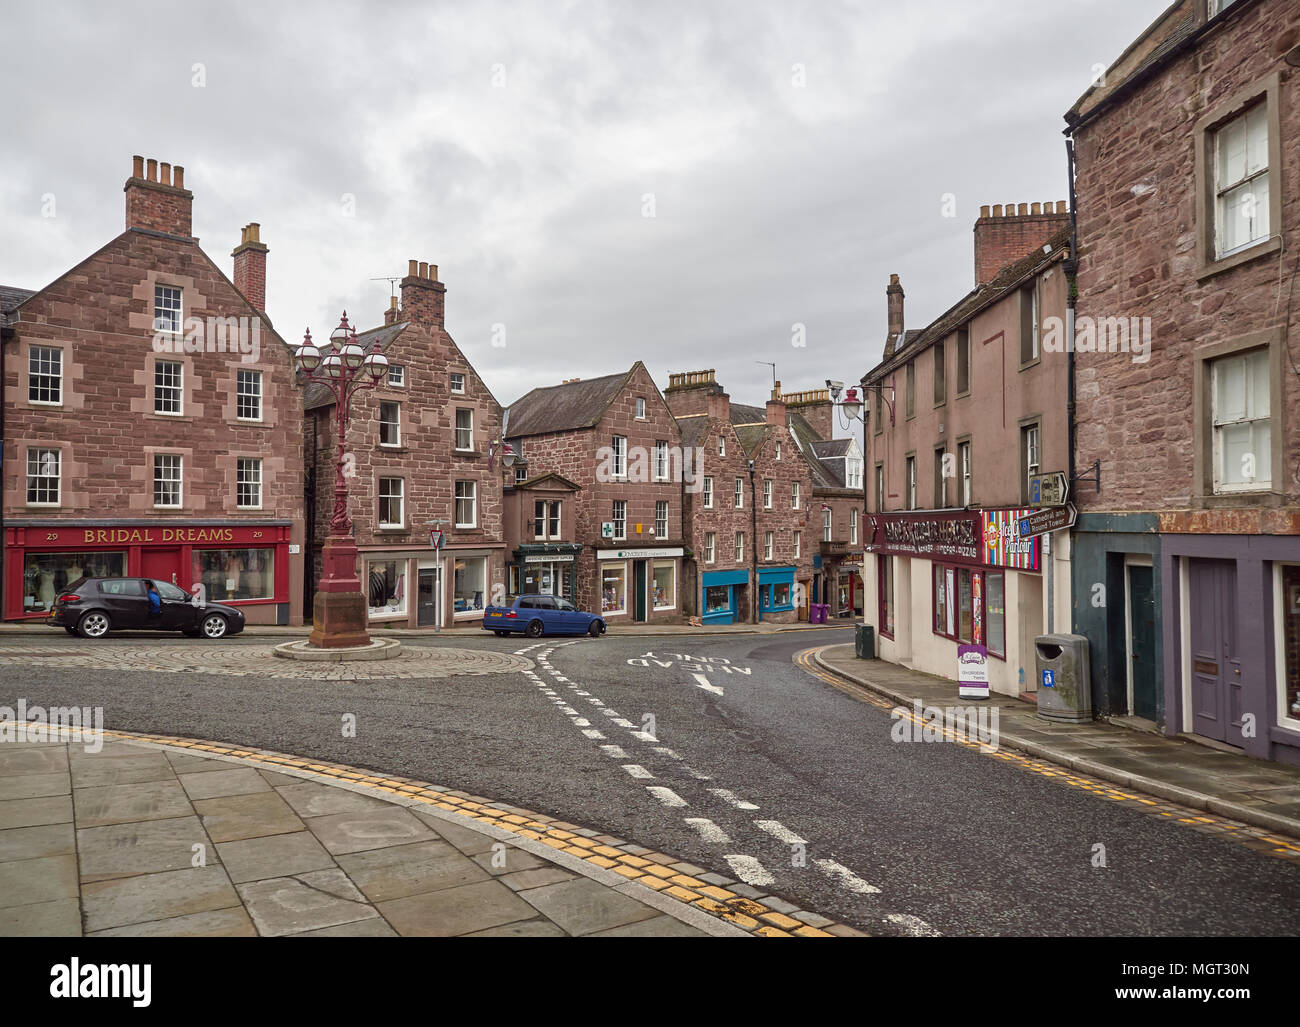 Looking towards the High Street from Church Street, with parked cars and shops closing on a Saturday afternoon in Brechin, Angus, Scotland. - Stock Image